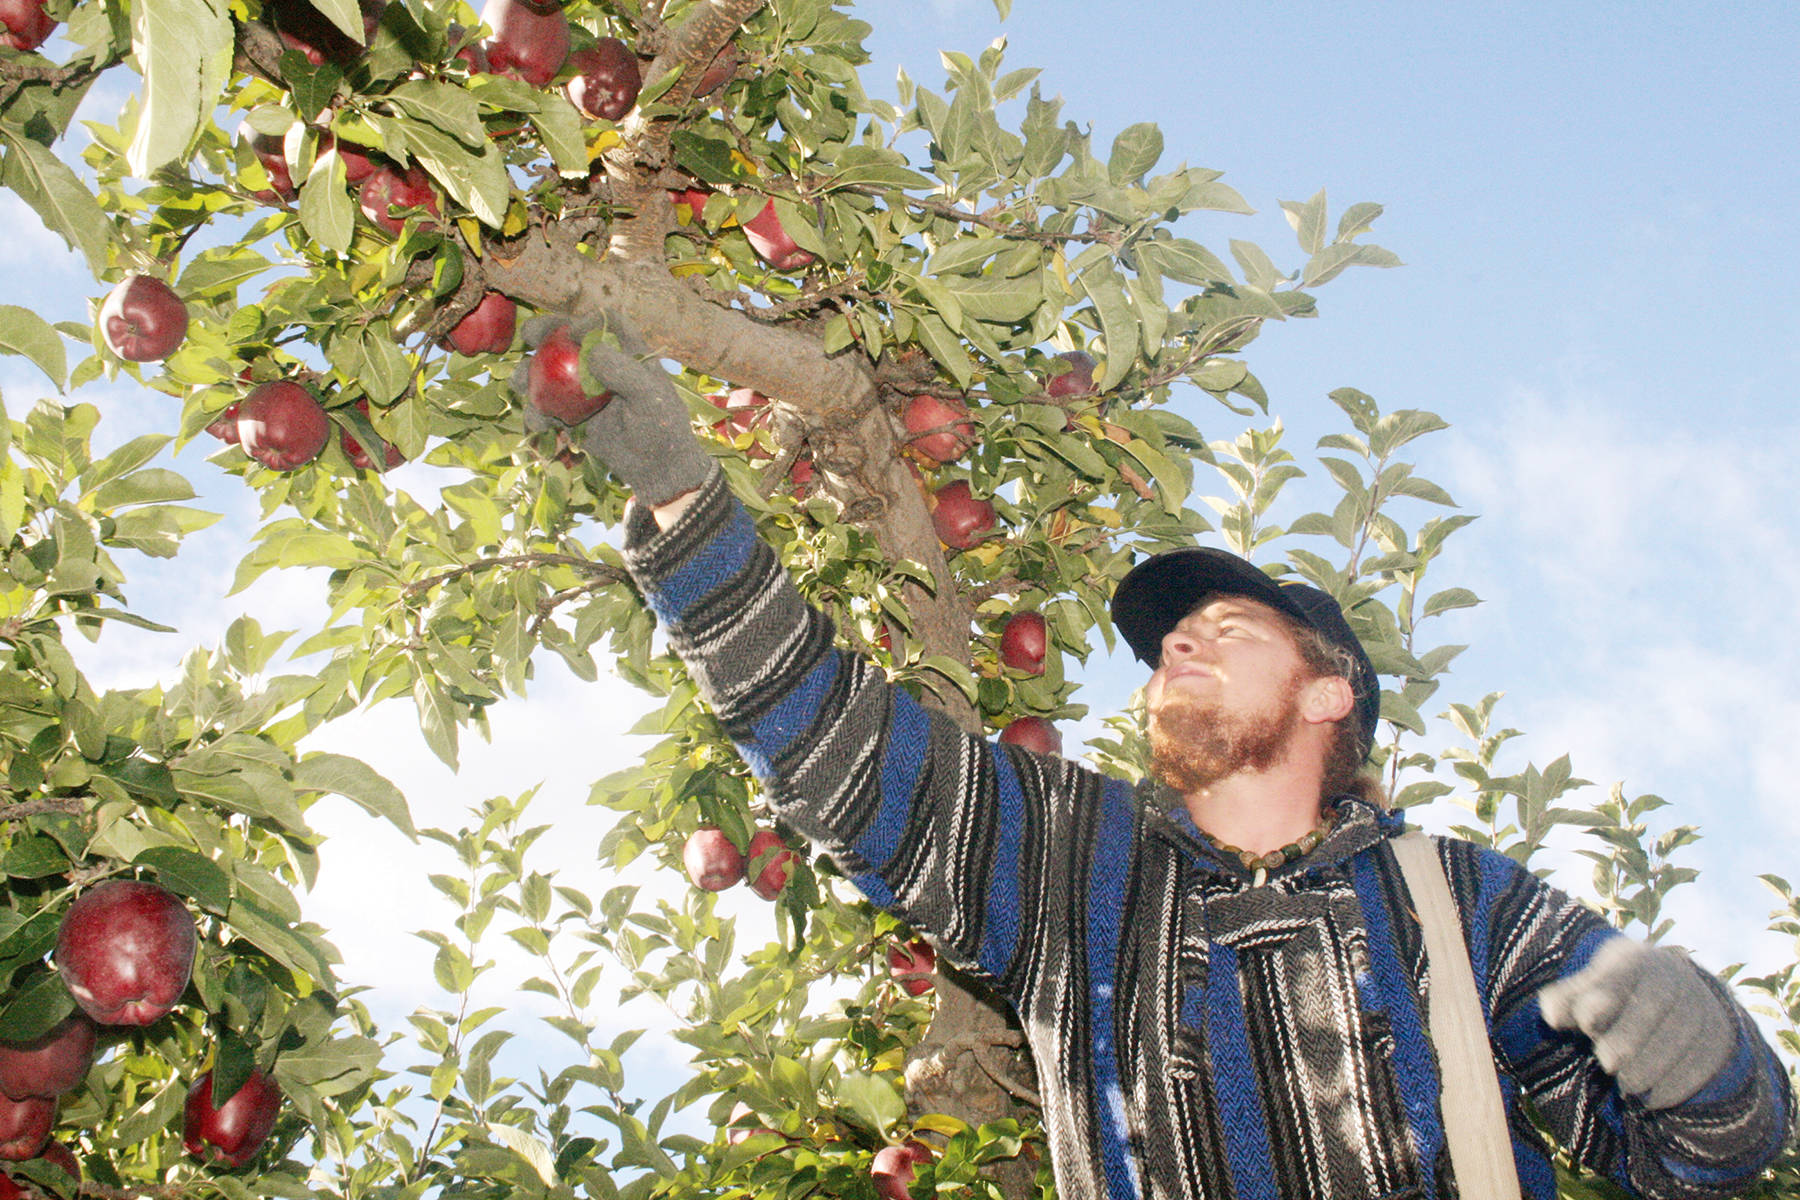 Fruit pickers are busy harvesting this year's crops at orchards around British Columbia. (Summerland Review file photo)